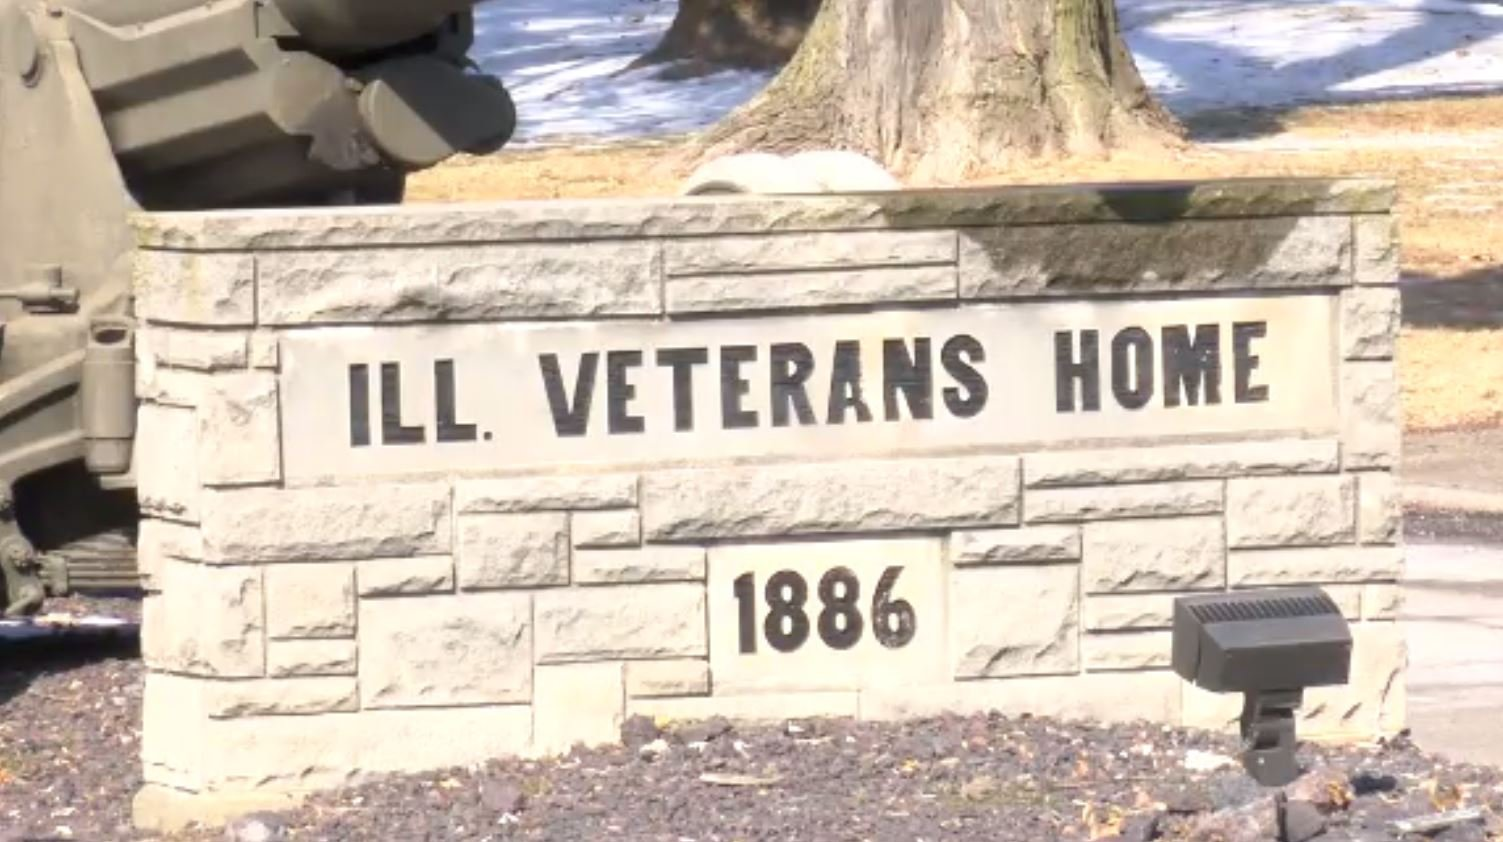 Another case of Legionnaires' disease confirmed at Illinois Vets' Home